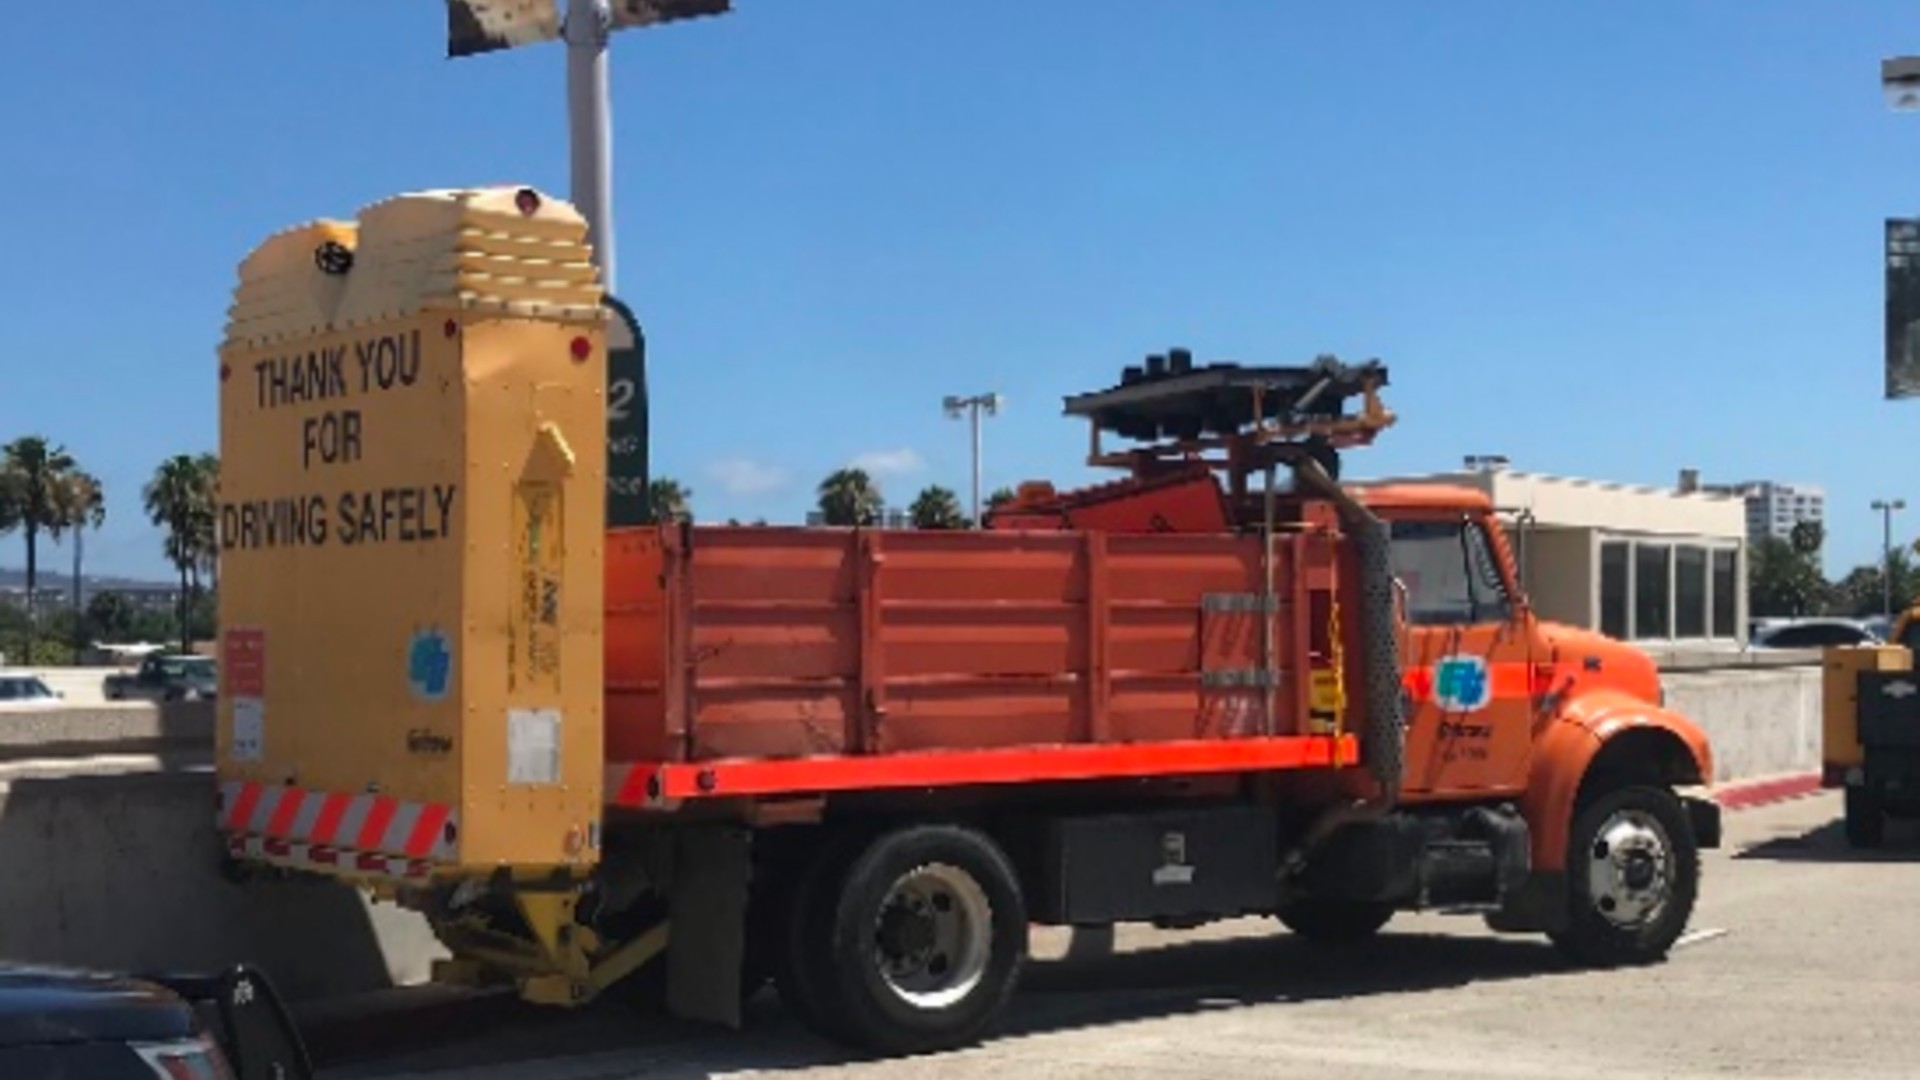 Irvine police released a photo of the Caltrans work truck.